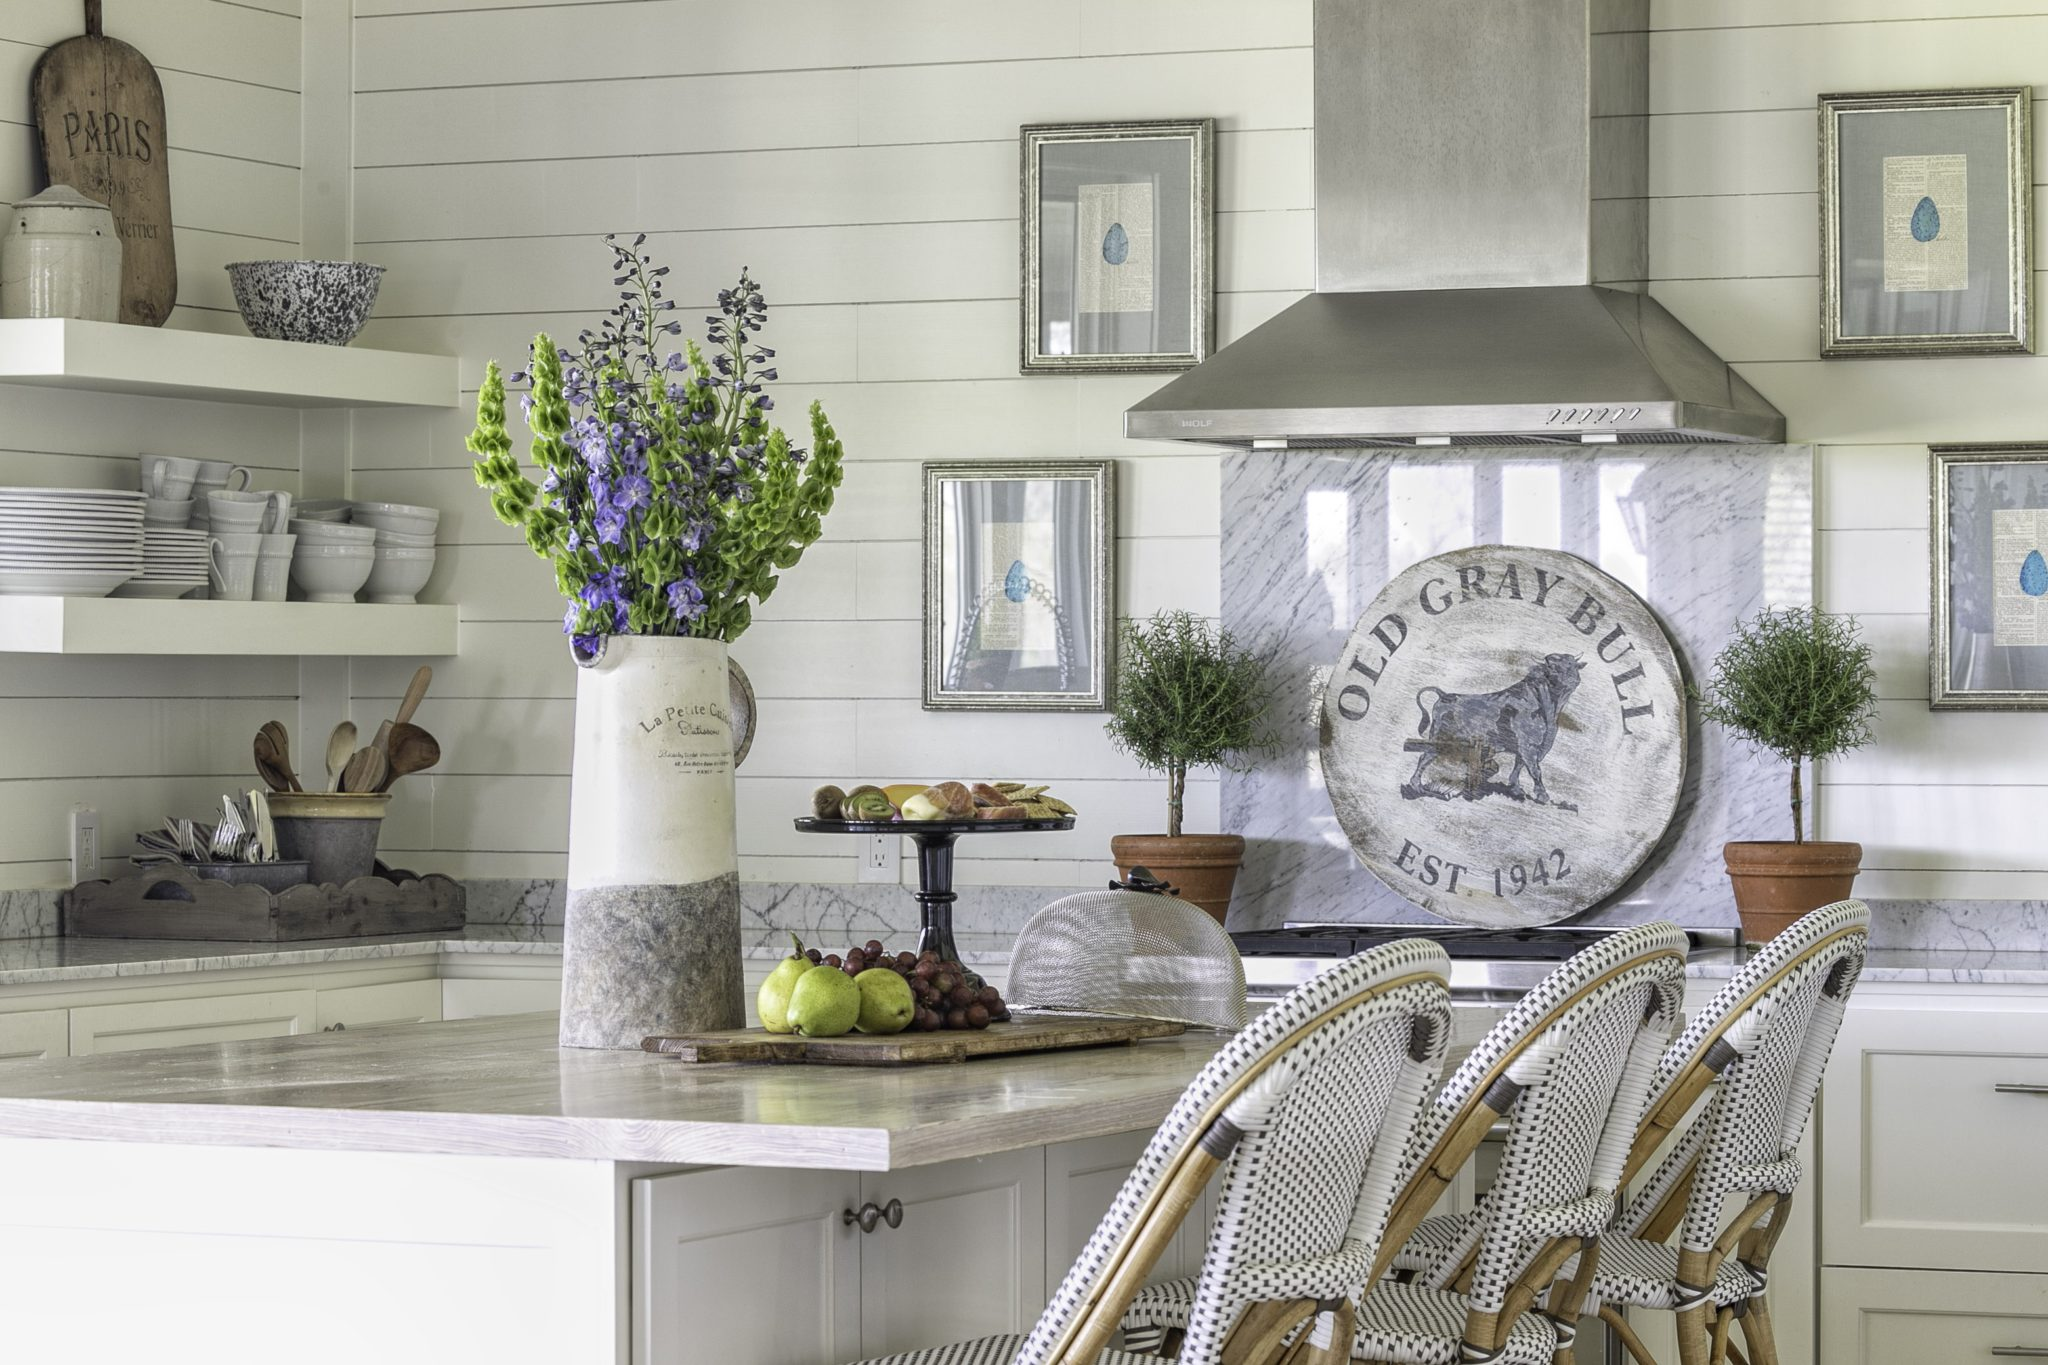 Texas farmhouse kitchen with shiplap walls & woven rattan counter stools by Cindy Witmer Designs